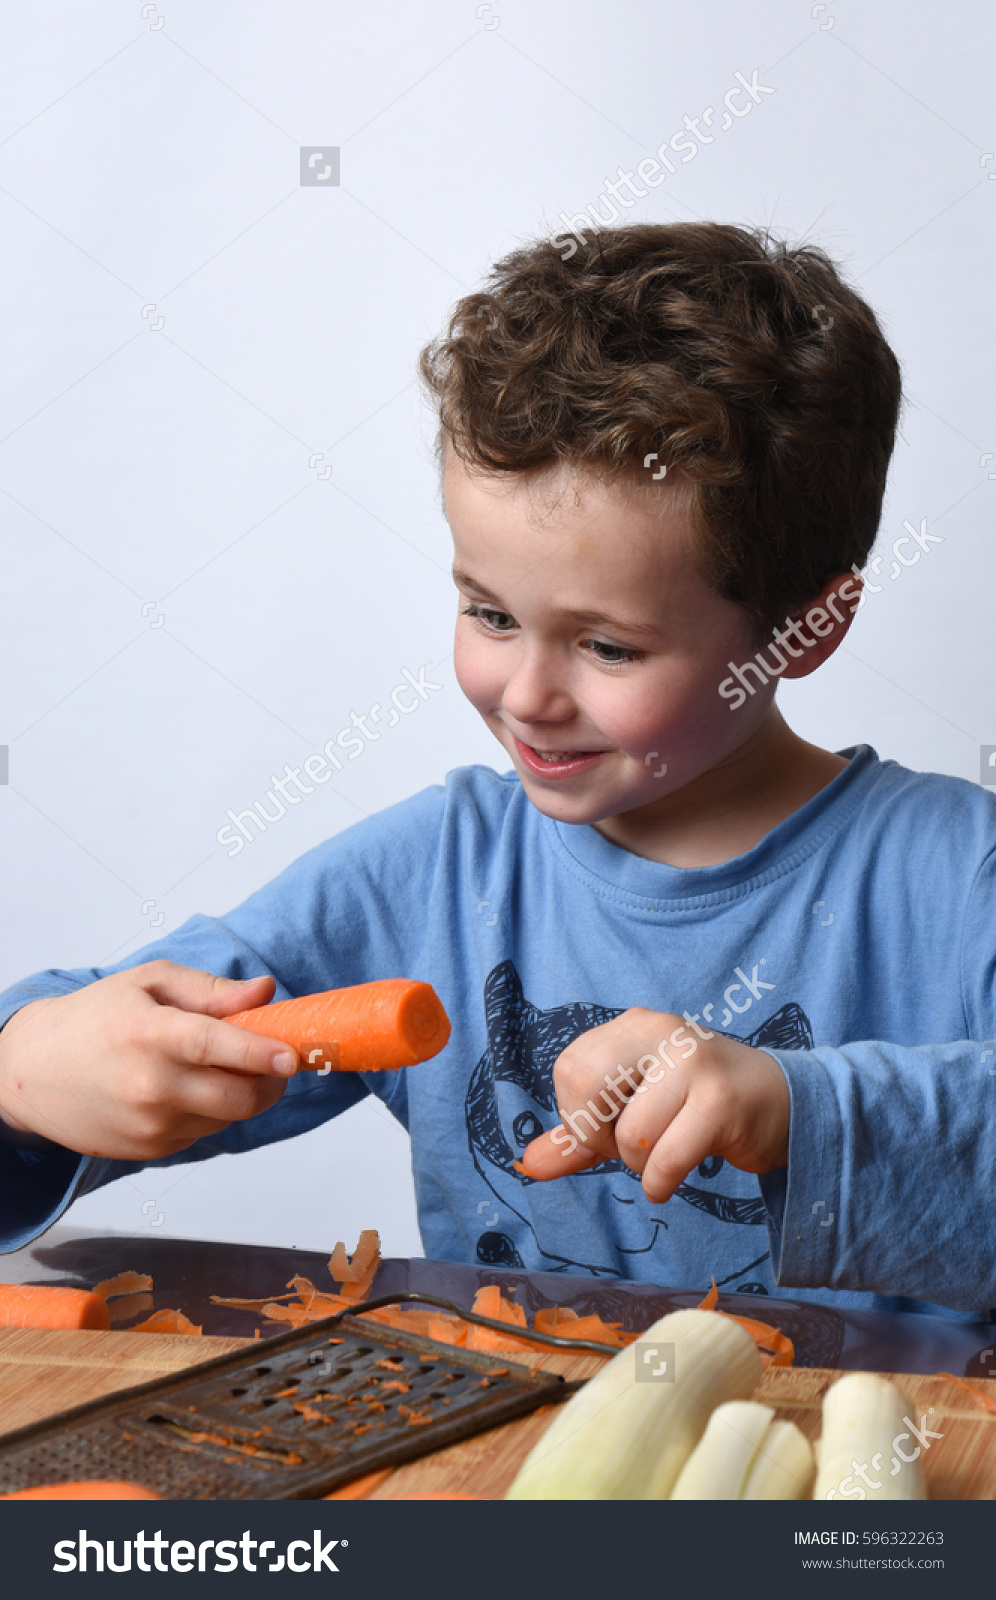 stock-photo-child-cooking-596322263